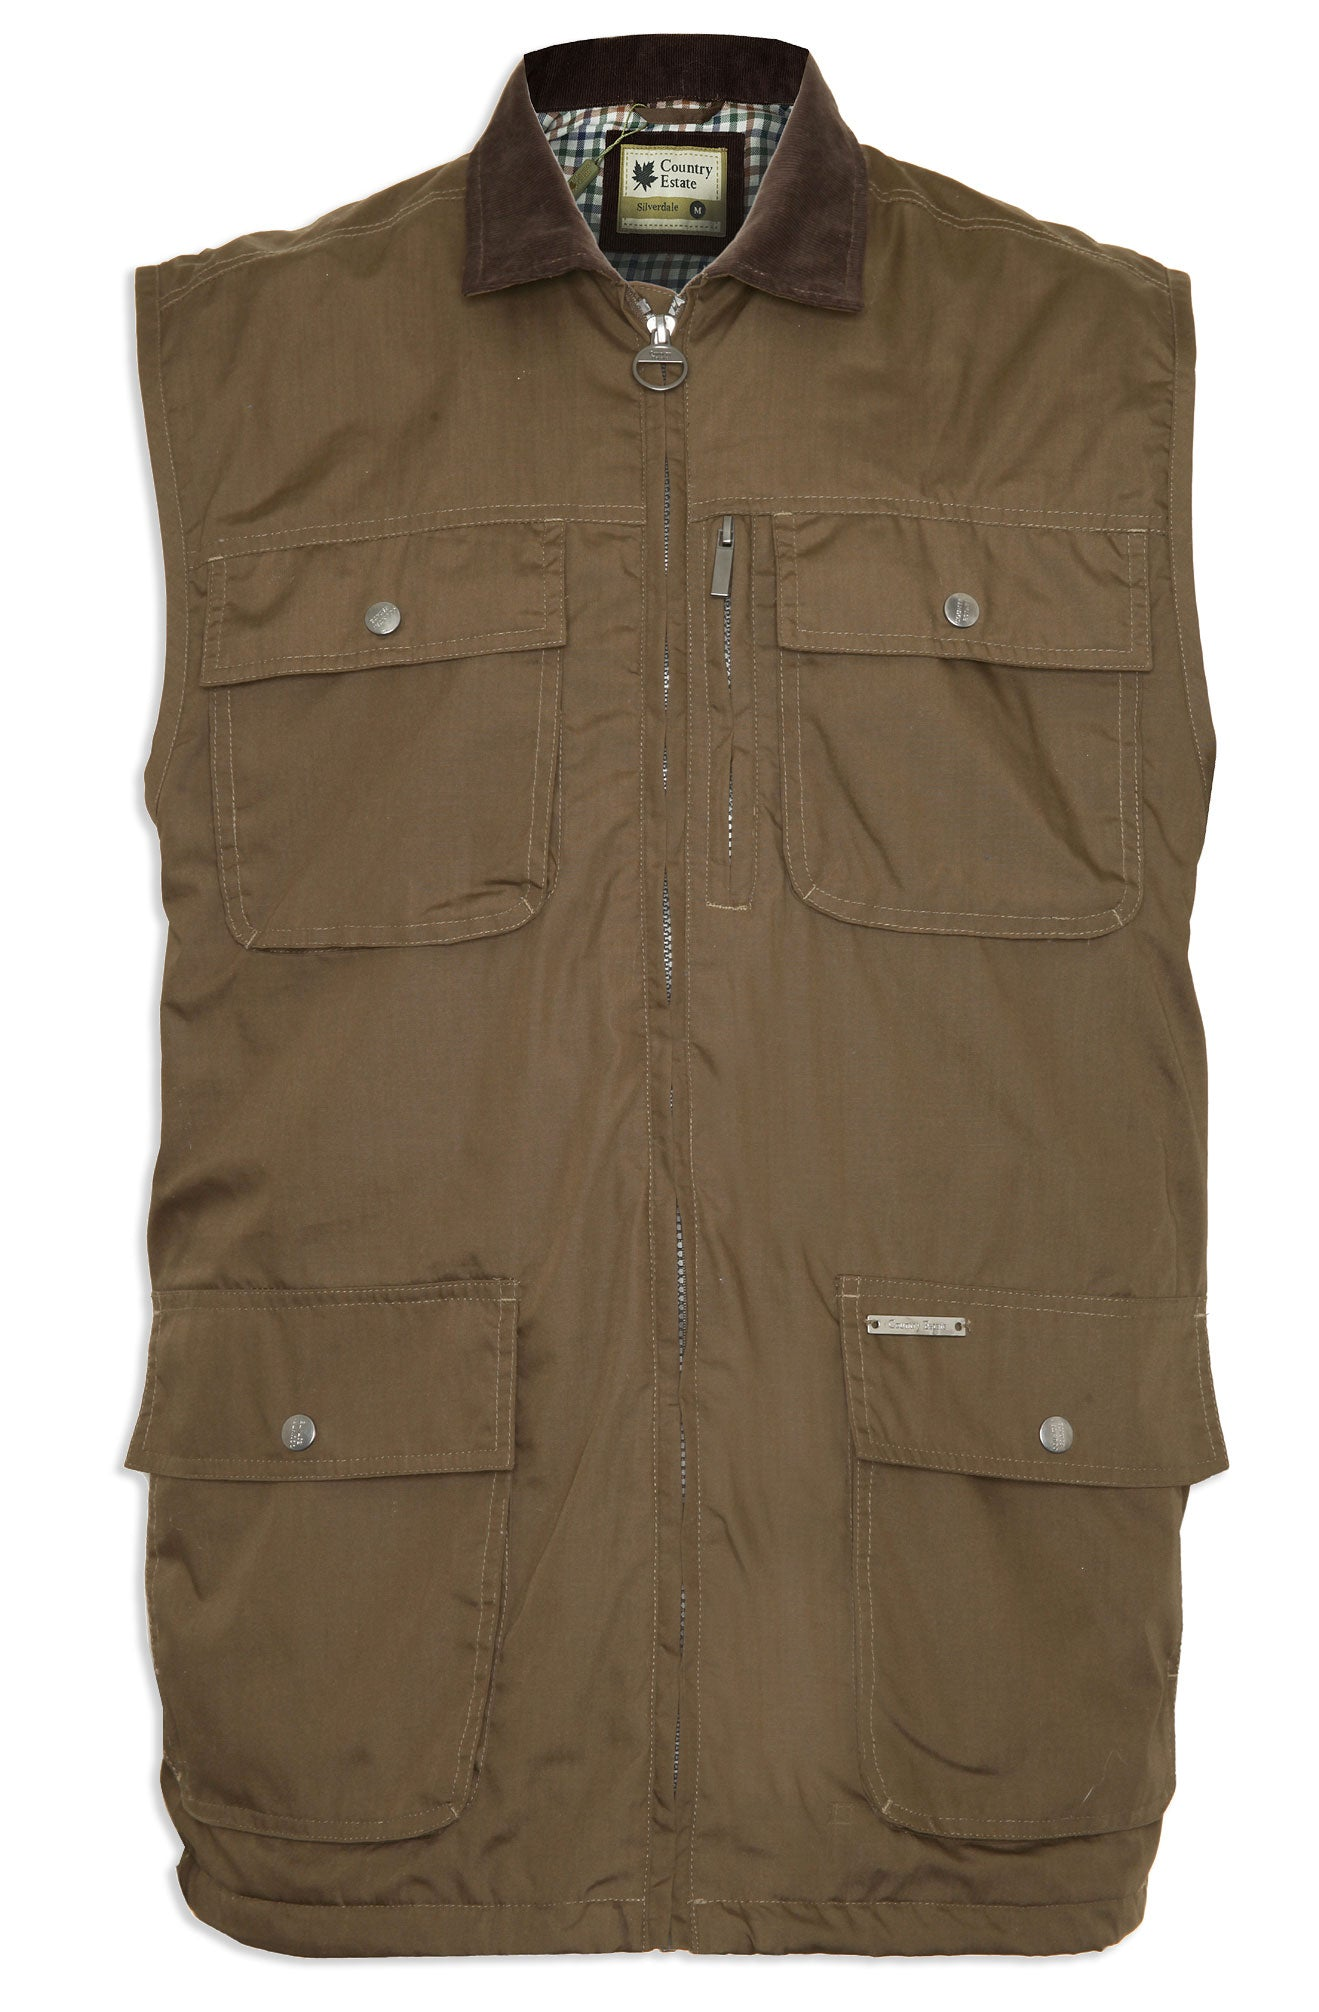 waistcoat with four secure pockets Silverdale Multi Pocket Waistcoat from Champion Outdoor